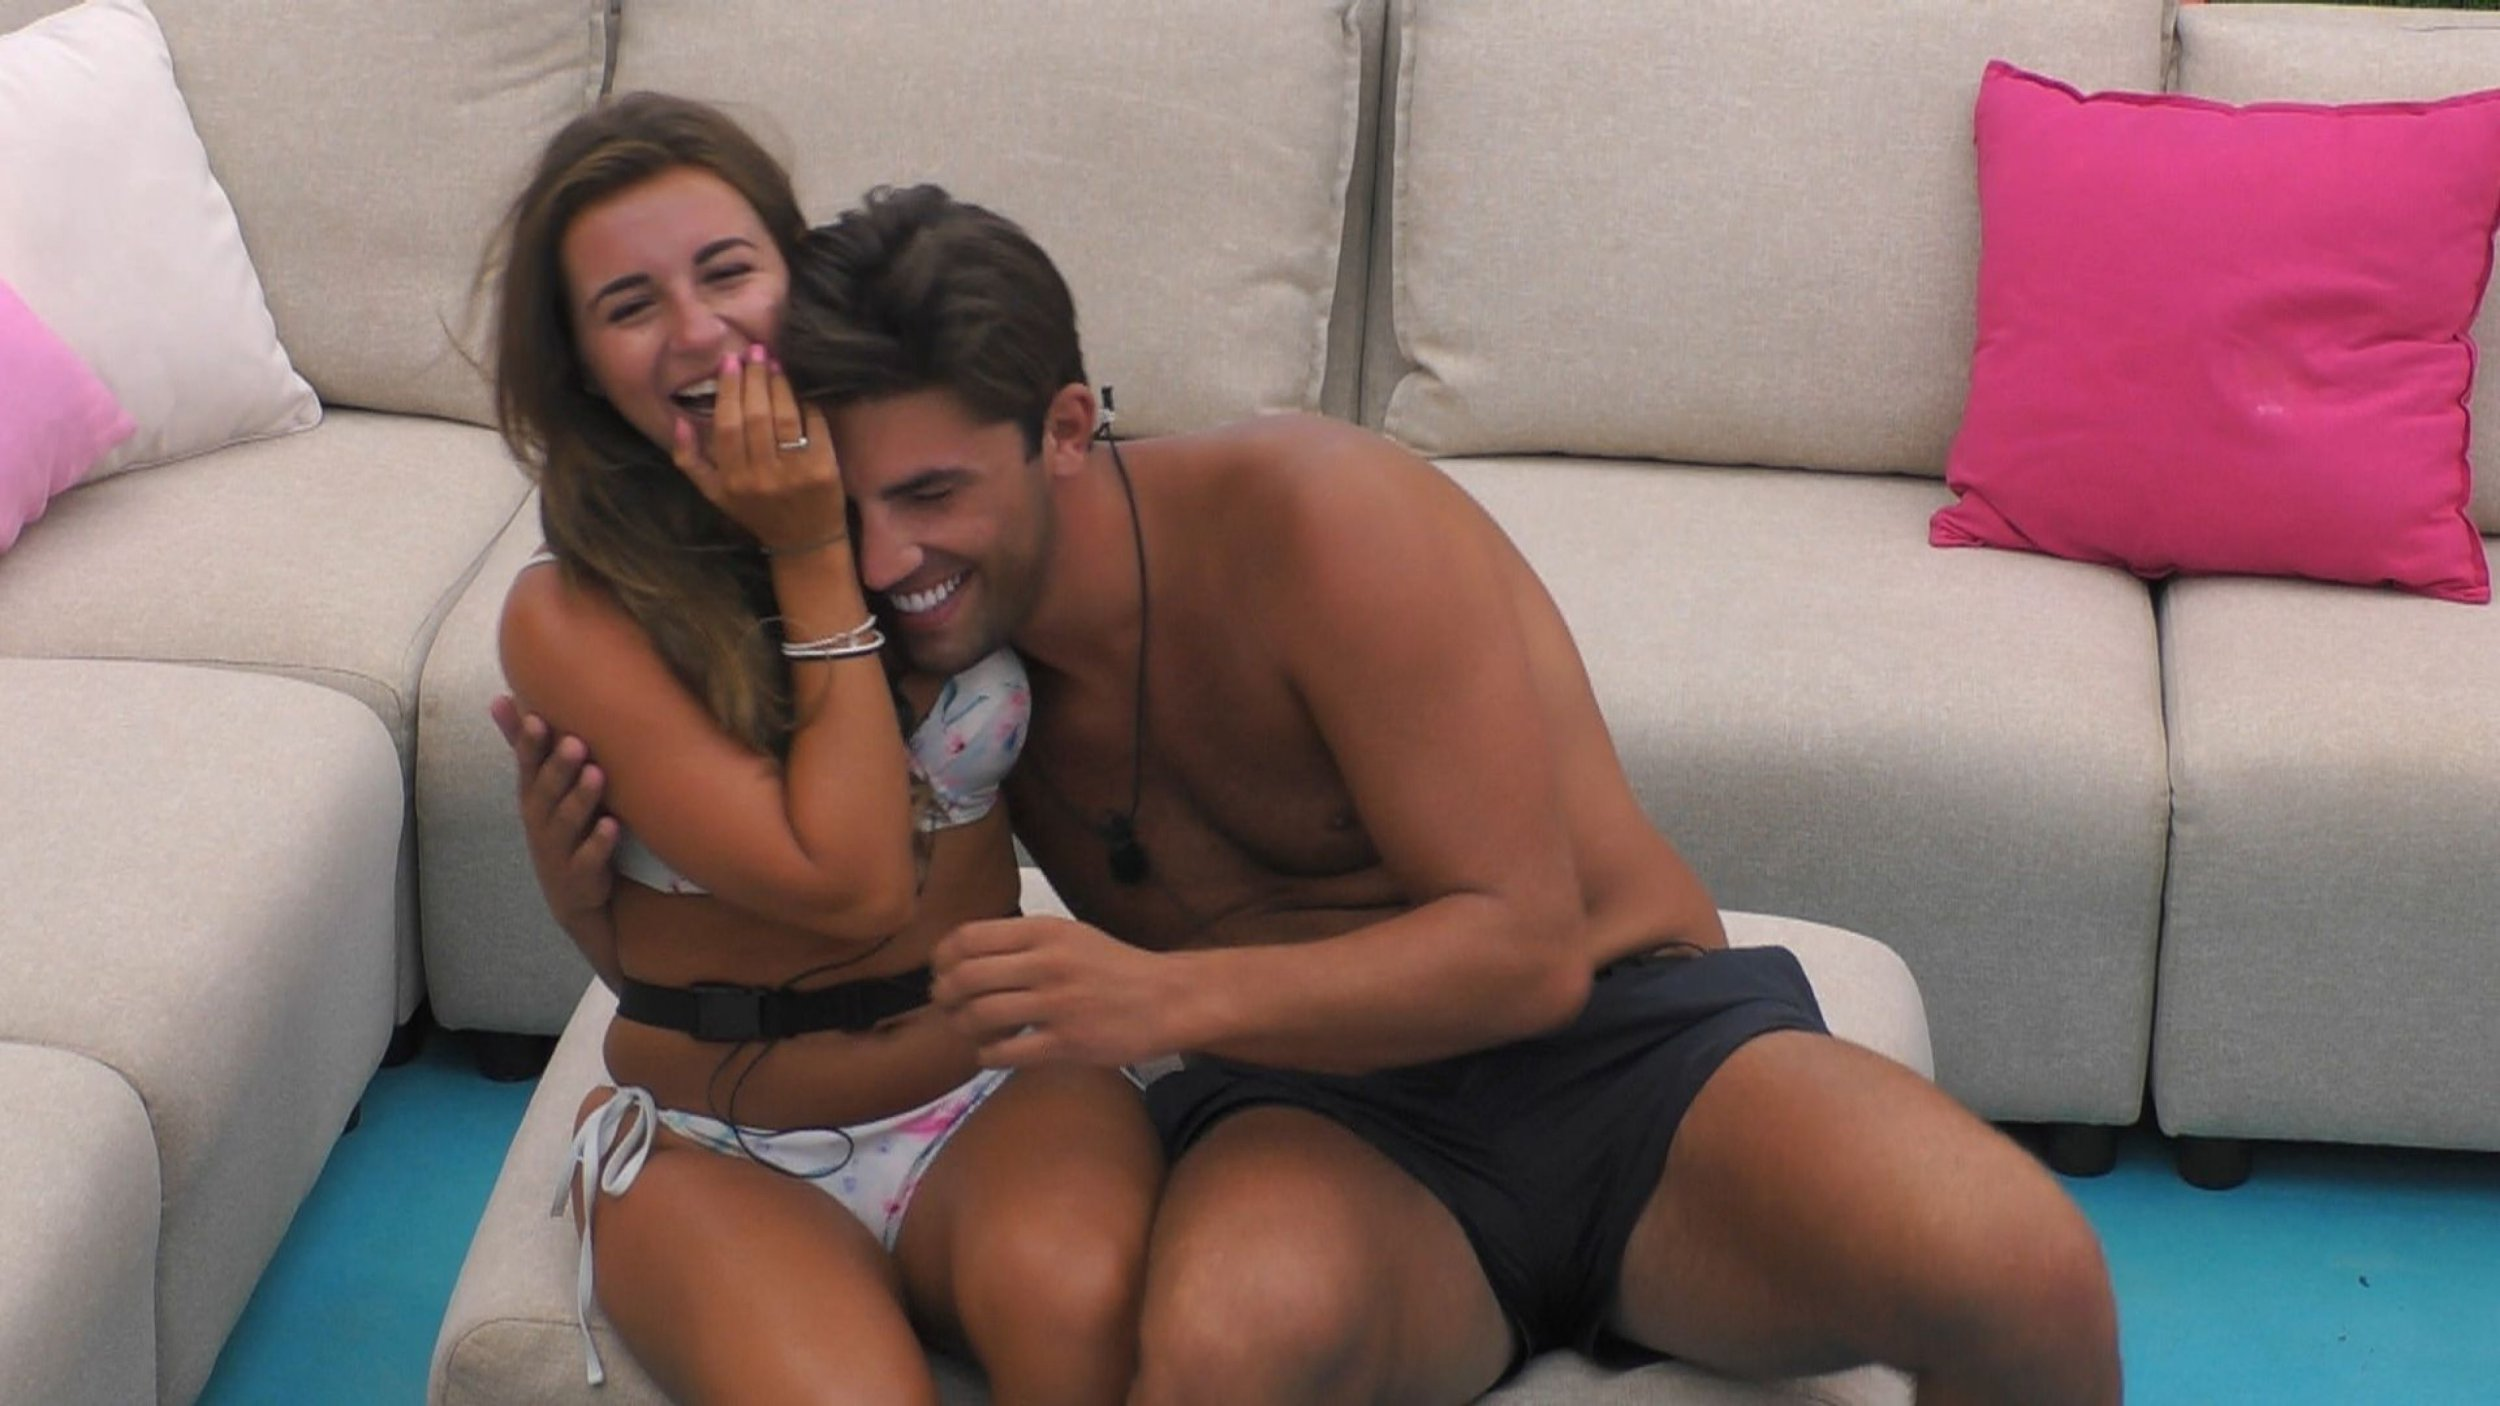 Editorial use only Mandatory Credit: Photo by ITV/REX/Shutterstock (9773447ab) Jack Fincham reacts to Dani Dyer's parents 'Love Island' TV Show, Series 4, Episode 56, Majorca, Spain - 29 Jul 2018 It's Friends and Family time! Danny Dyer gives his verdict on Jack. Alexandra's mum has her say on Alex. Laura drops a wedding faux pas